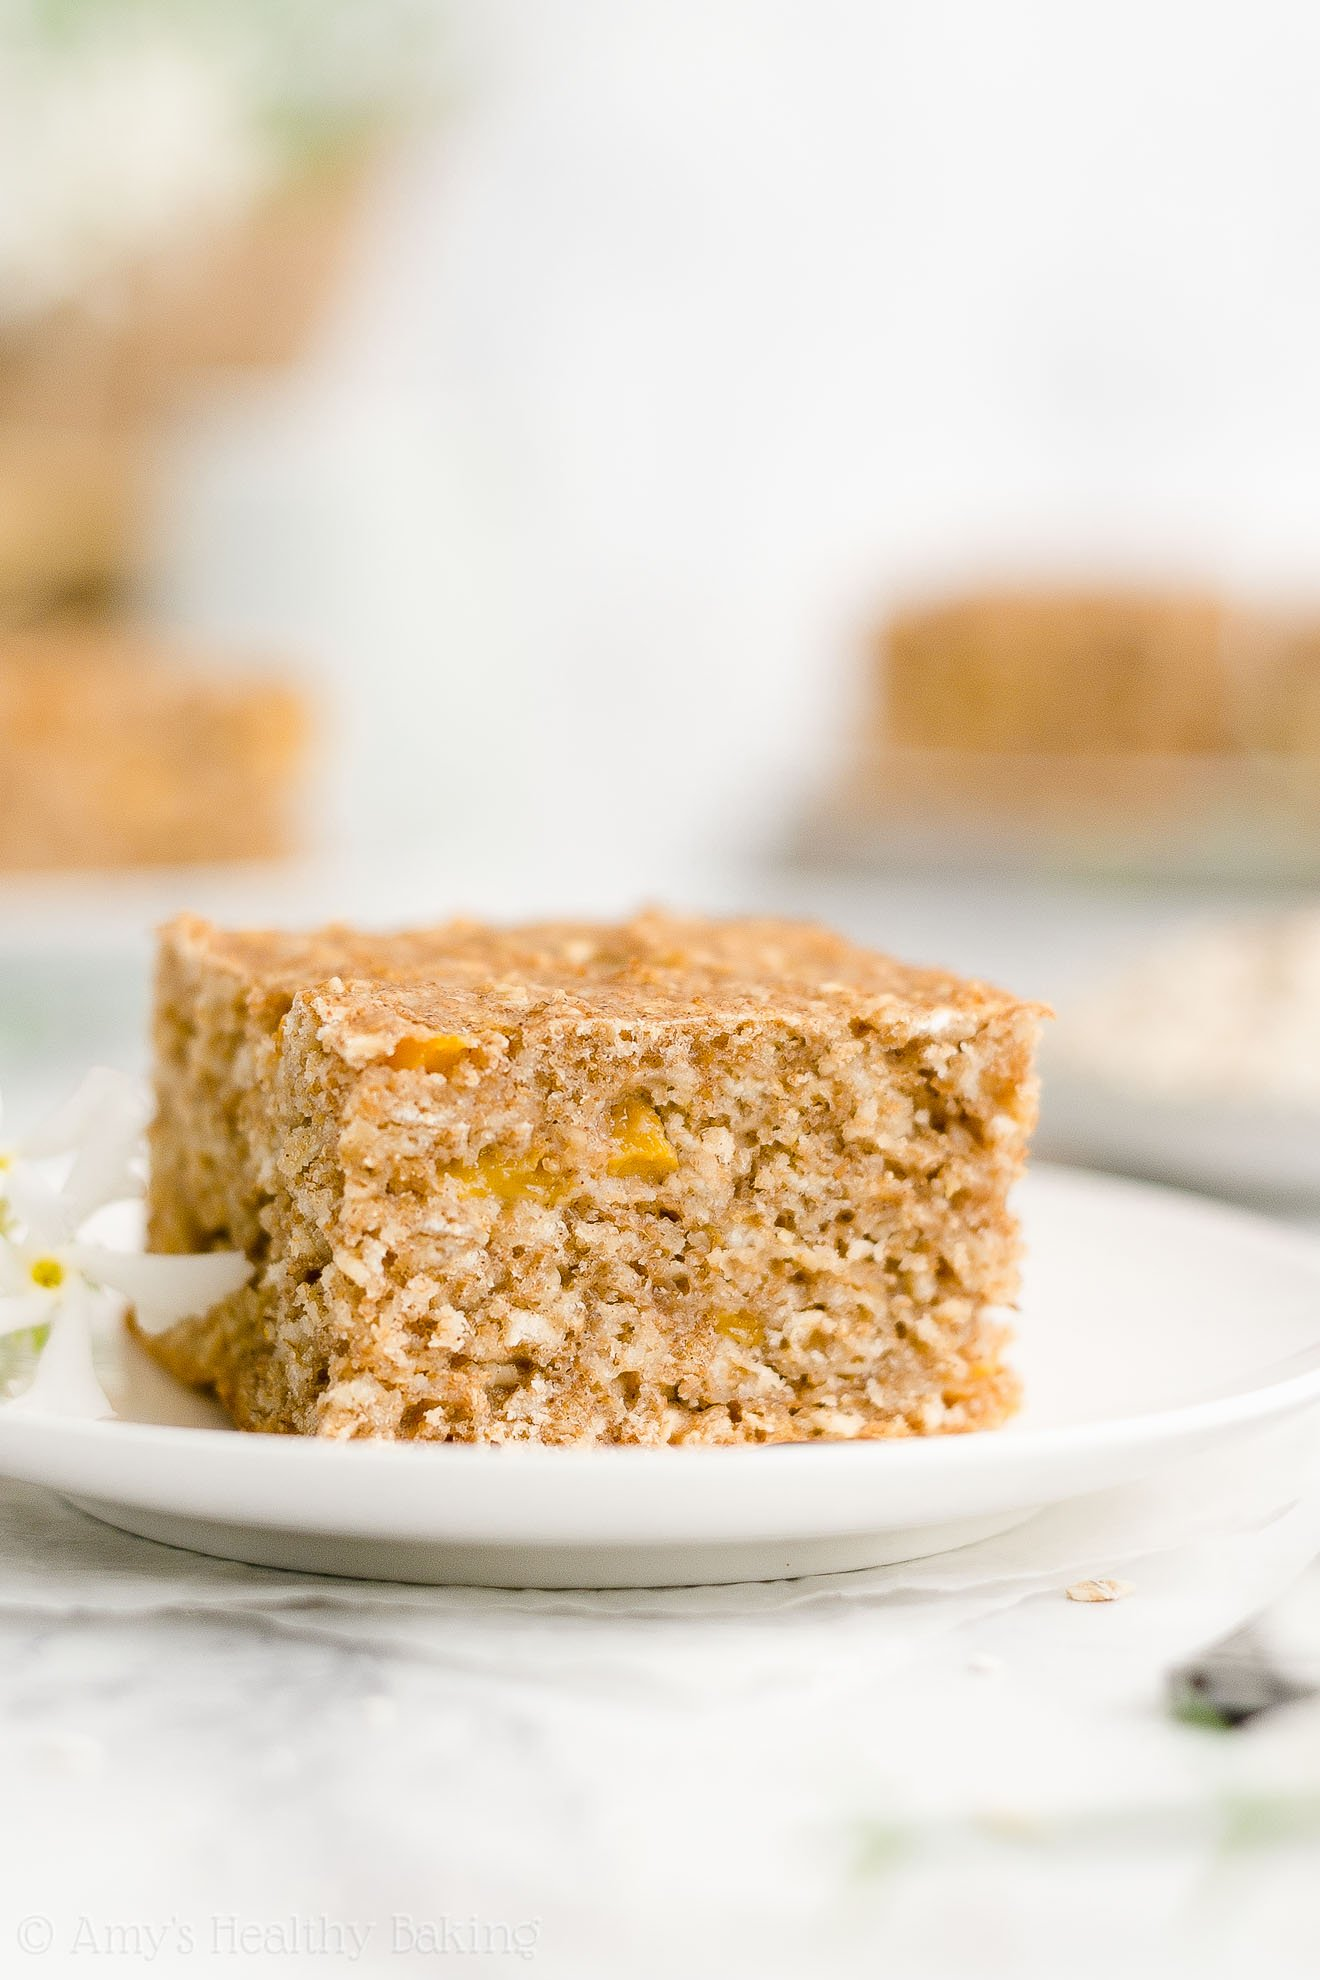 Easy Healthy Low Calorie Gluten Free Canned Peach Oatmeal Breakfast Cake